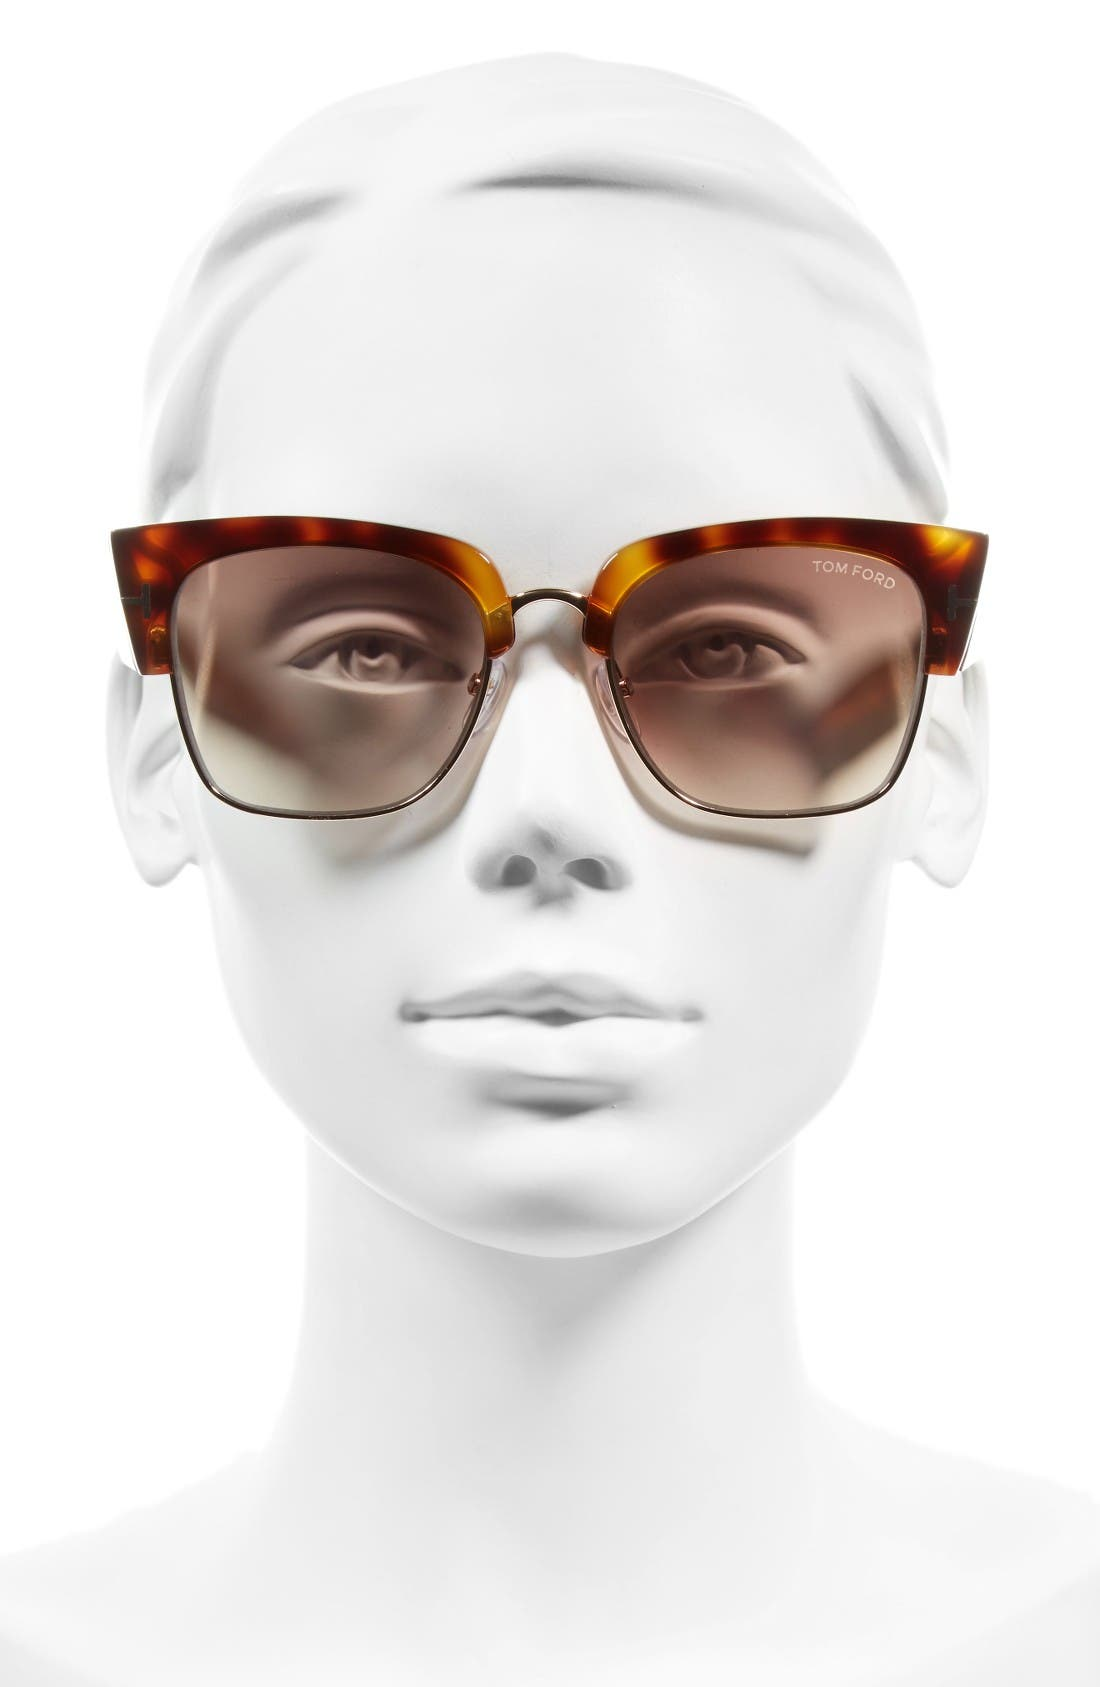 Dakota 55mm Retro Sunglasses,                             Alternate thumbnail 2, color,                             Blonde Havana/ Brown Mirror